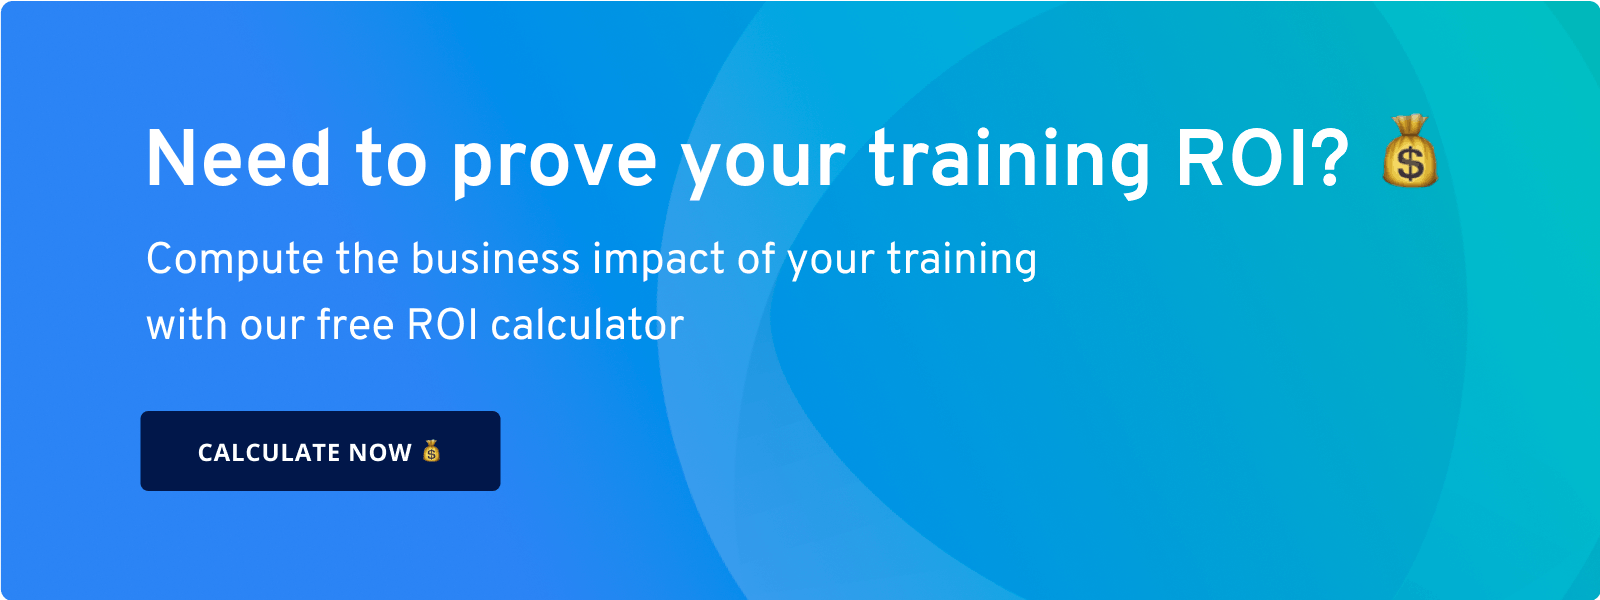 training ROI calculator